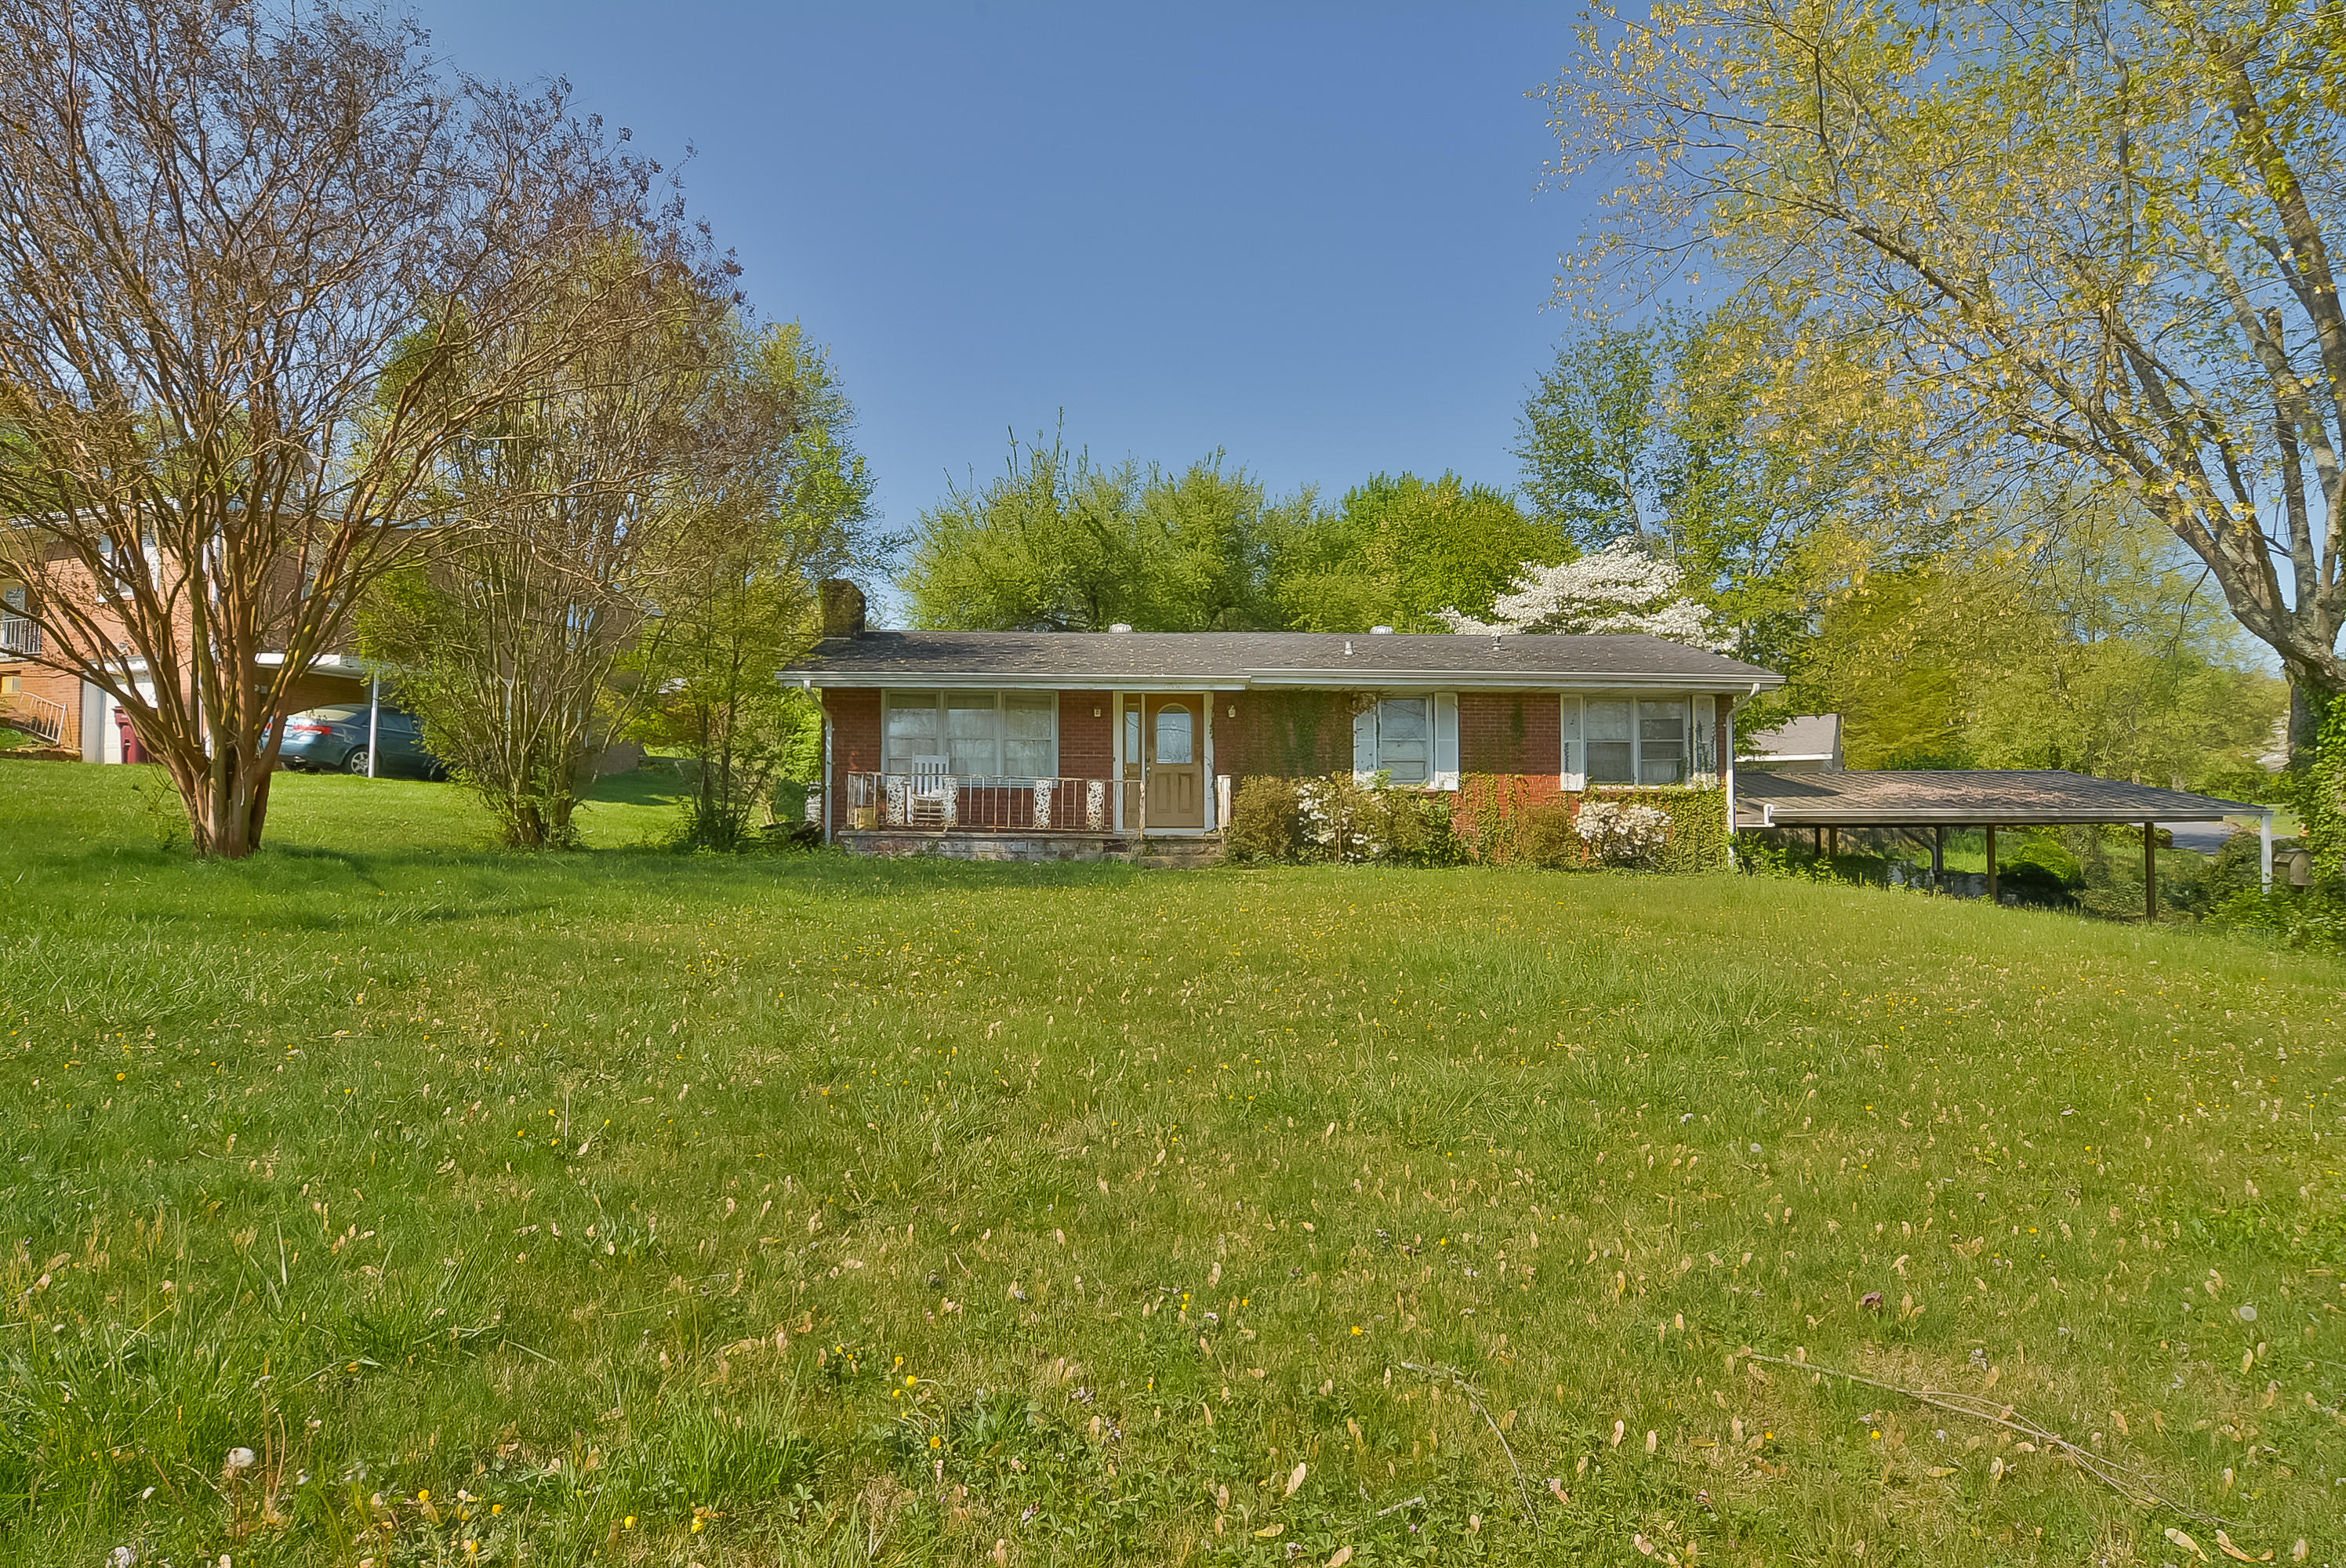 1715 East Oakland Avenue, Johnson City, Tennessee 37601, 2 Bedrooms Bedrooms, ,2 BathroomsBathrooms,Single Family,For Sale,1715 East Oakland Avenue,9921383